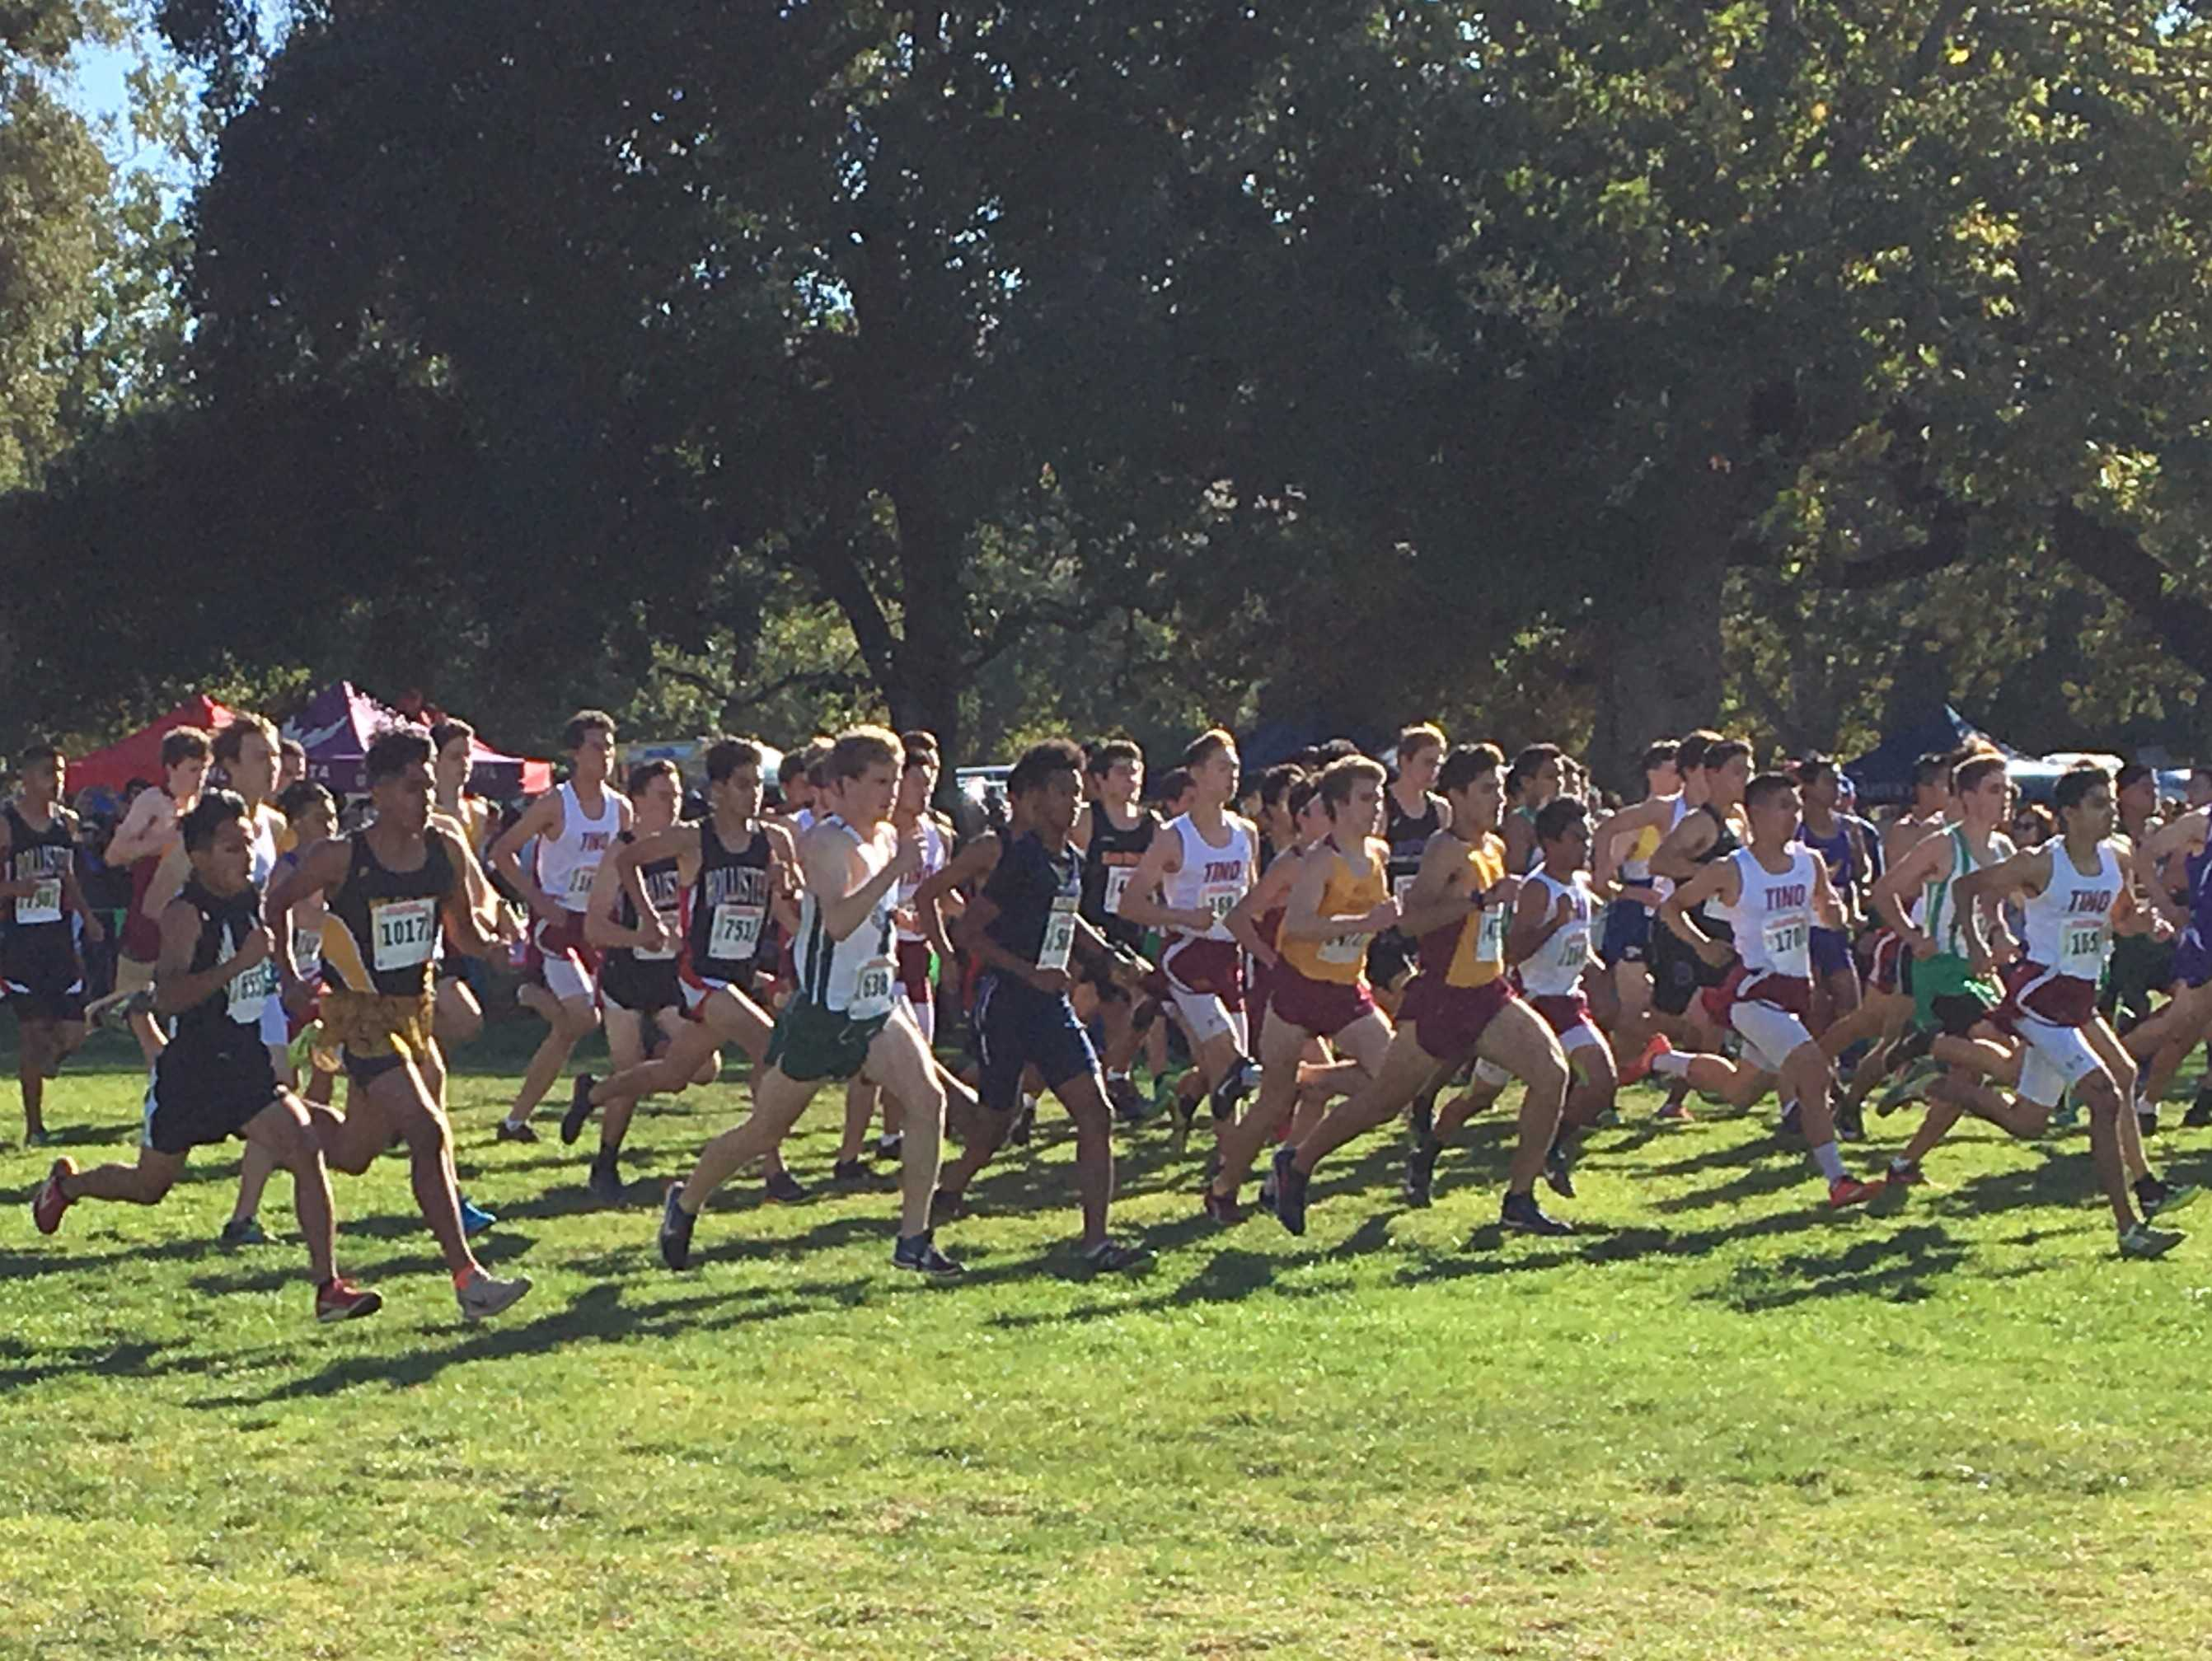 The Palo Alto High School boys' cross country team races across Toro Park in the Central Coast Section meet. Five out of the seven boys' varsity runners placed in the top 50 while four out of the seven girls placed in the top 50. Photo: Maya Akkaraju